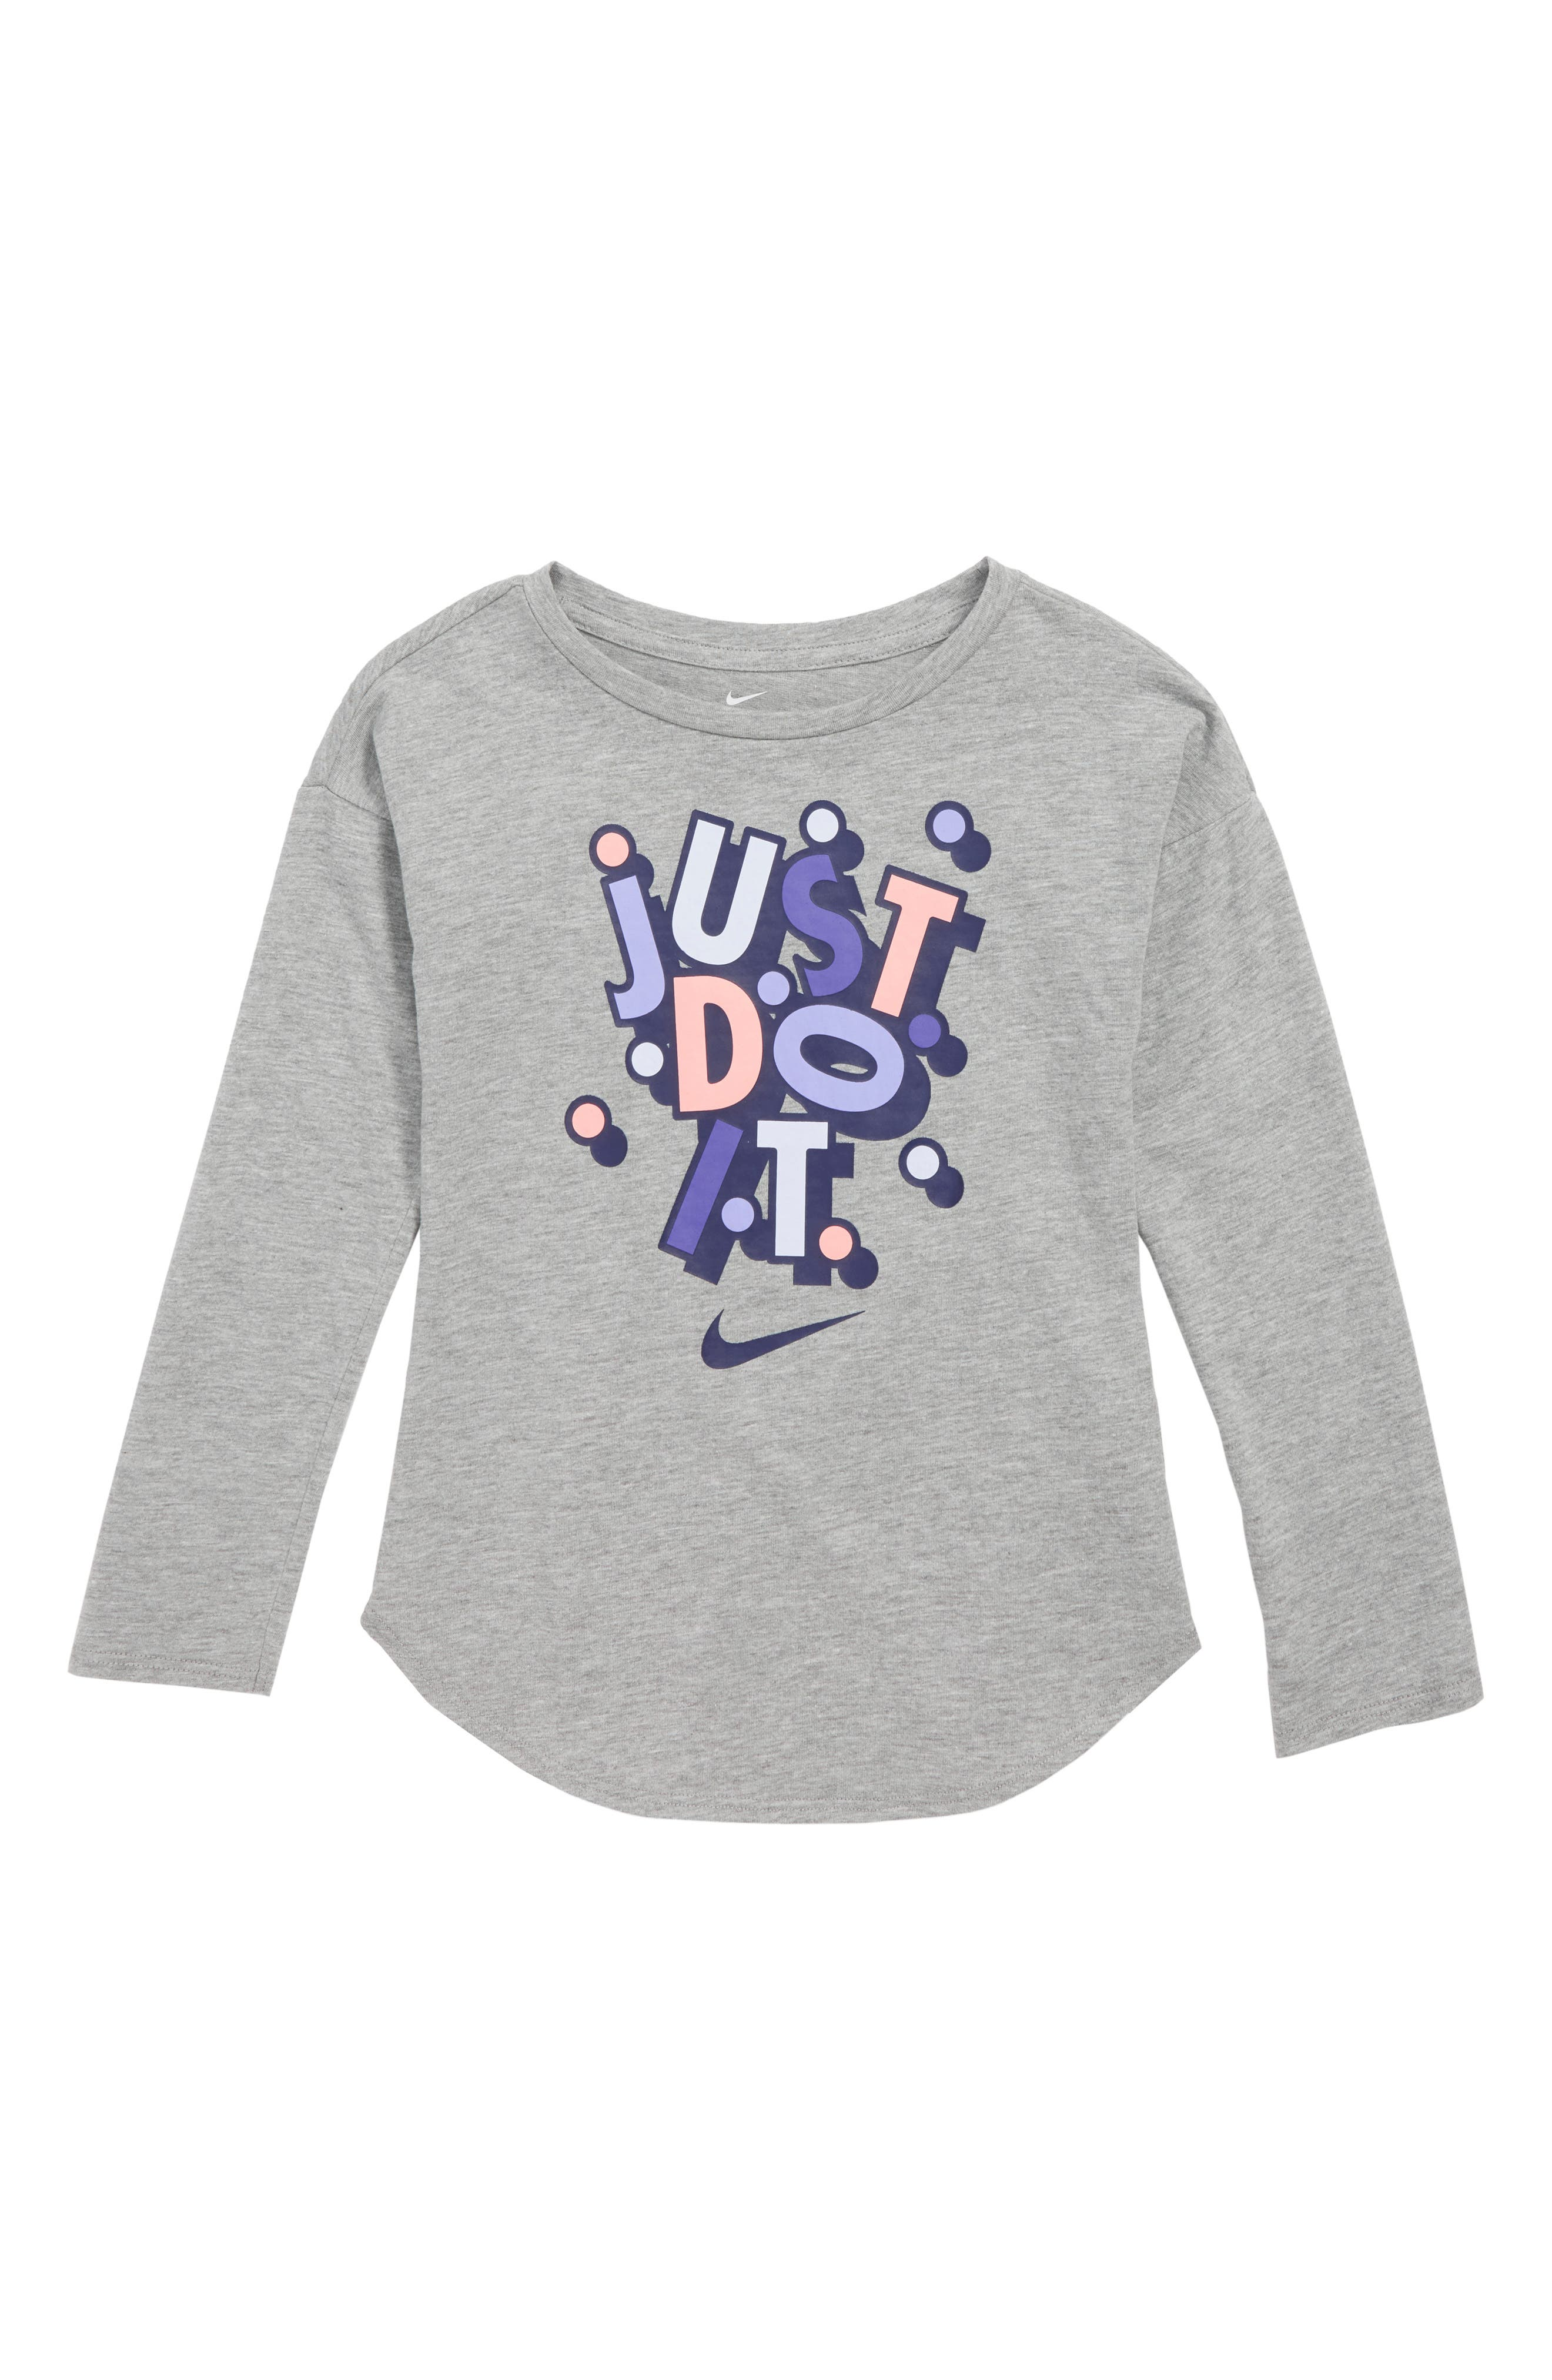 Confetti Just Do It Graphic Tee,                             Main thumbnail 1, color,                             DK GREY HEATHER